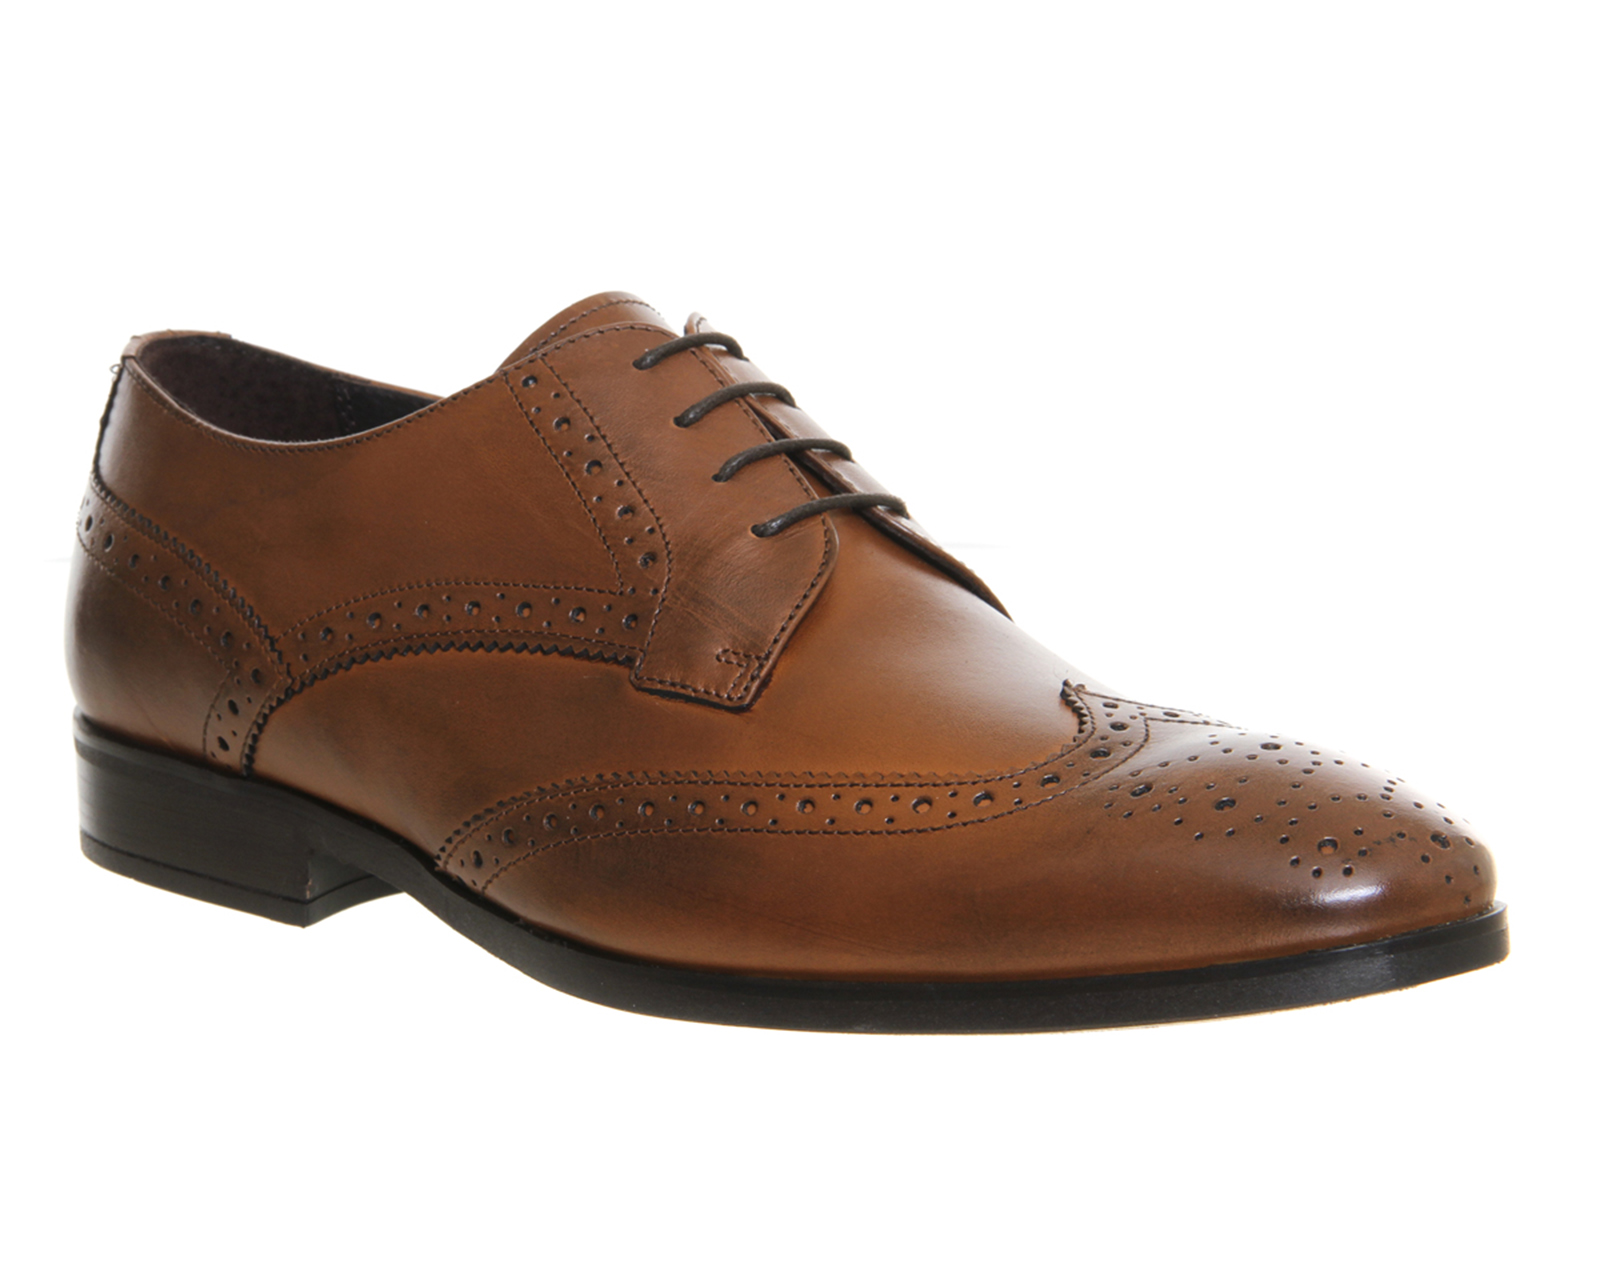 Mens Ask the Missus Bebop Brogue TAN LEATHER Formal Shoes ...